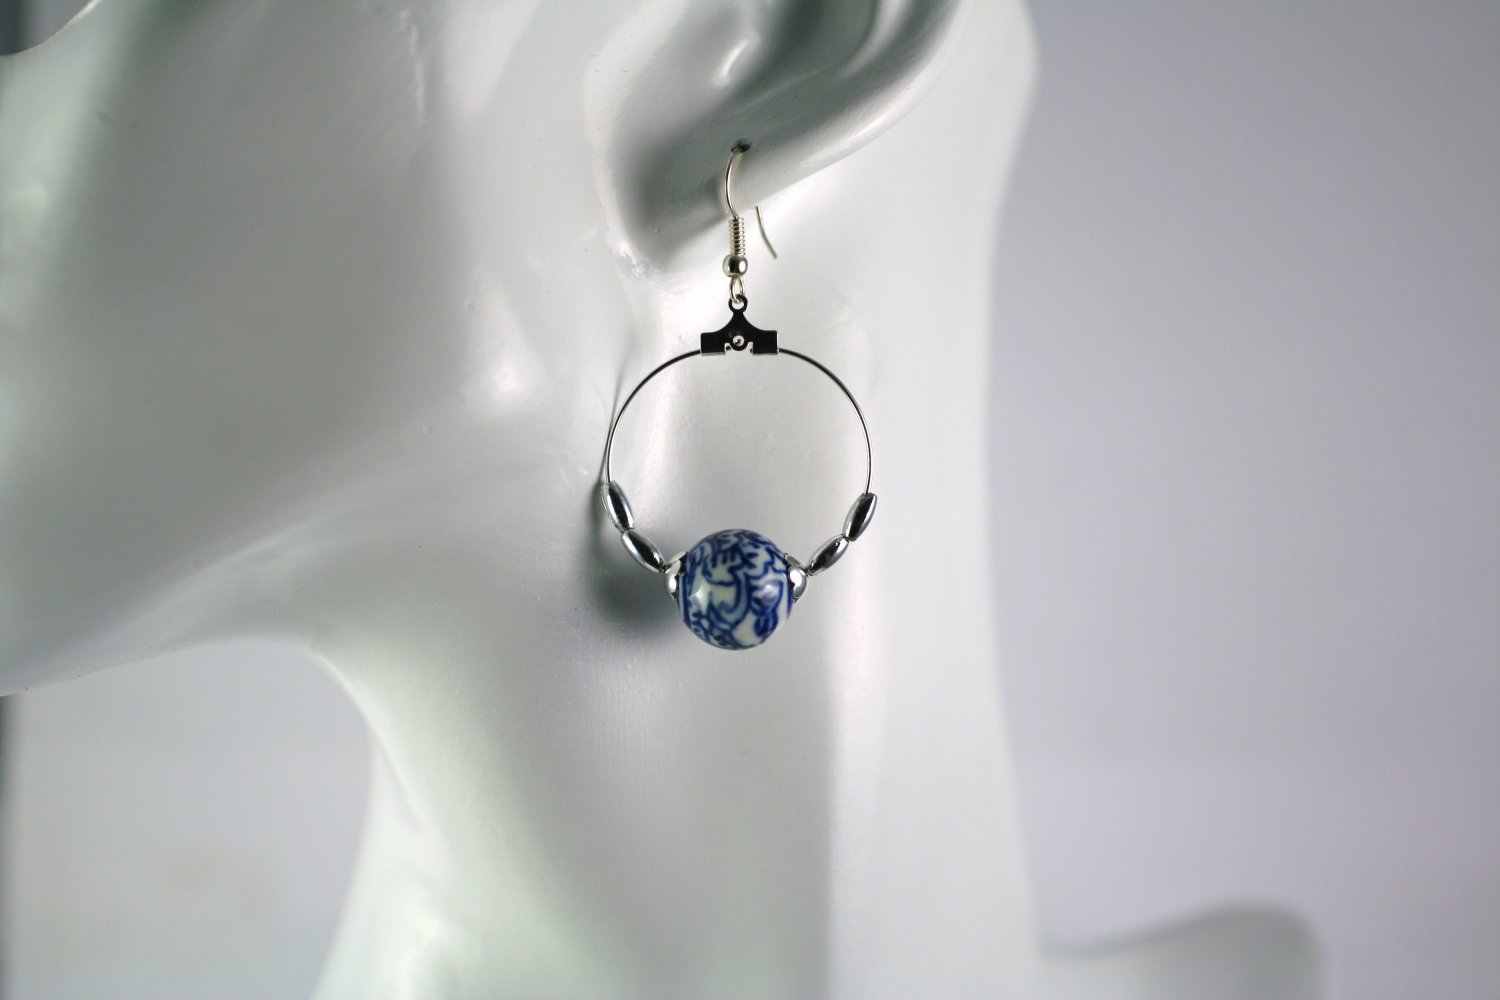 Silver Hoop Earrings with Asian Design Porcelain Beads 1 in.  Handcrafted Jewelry